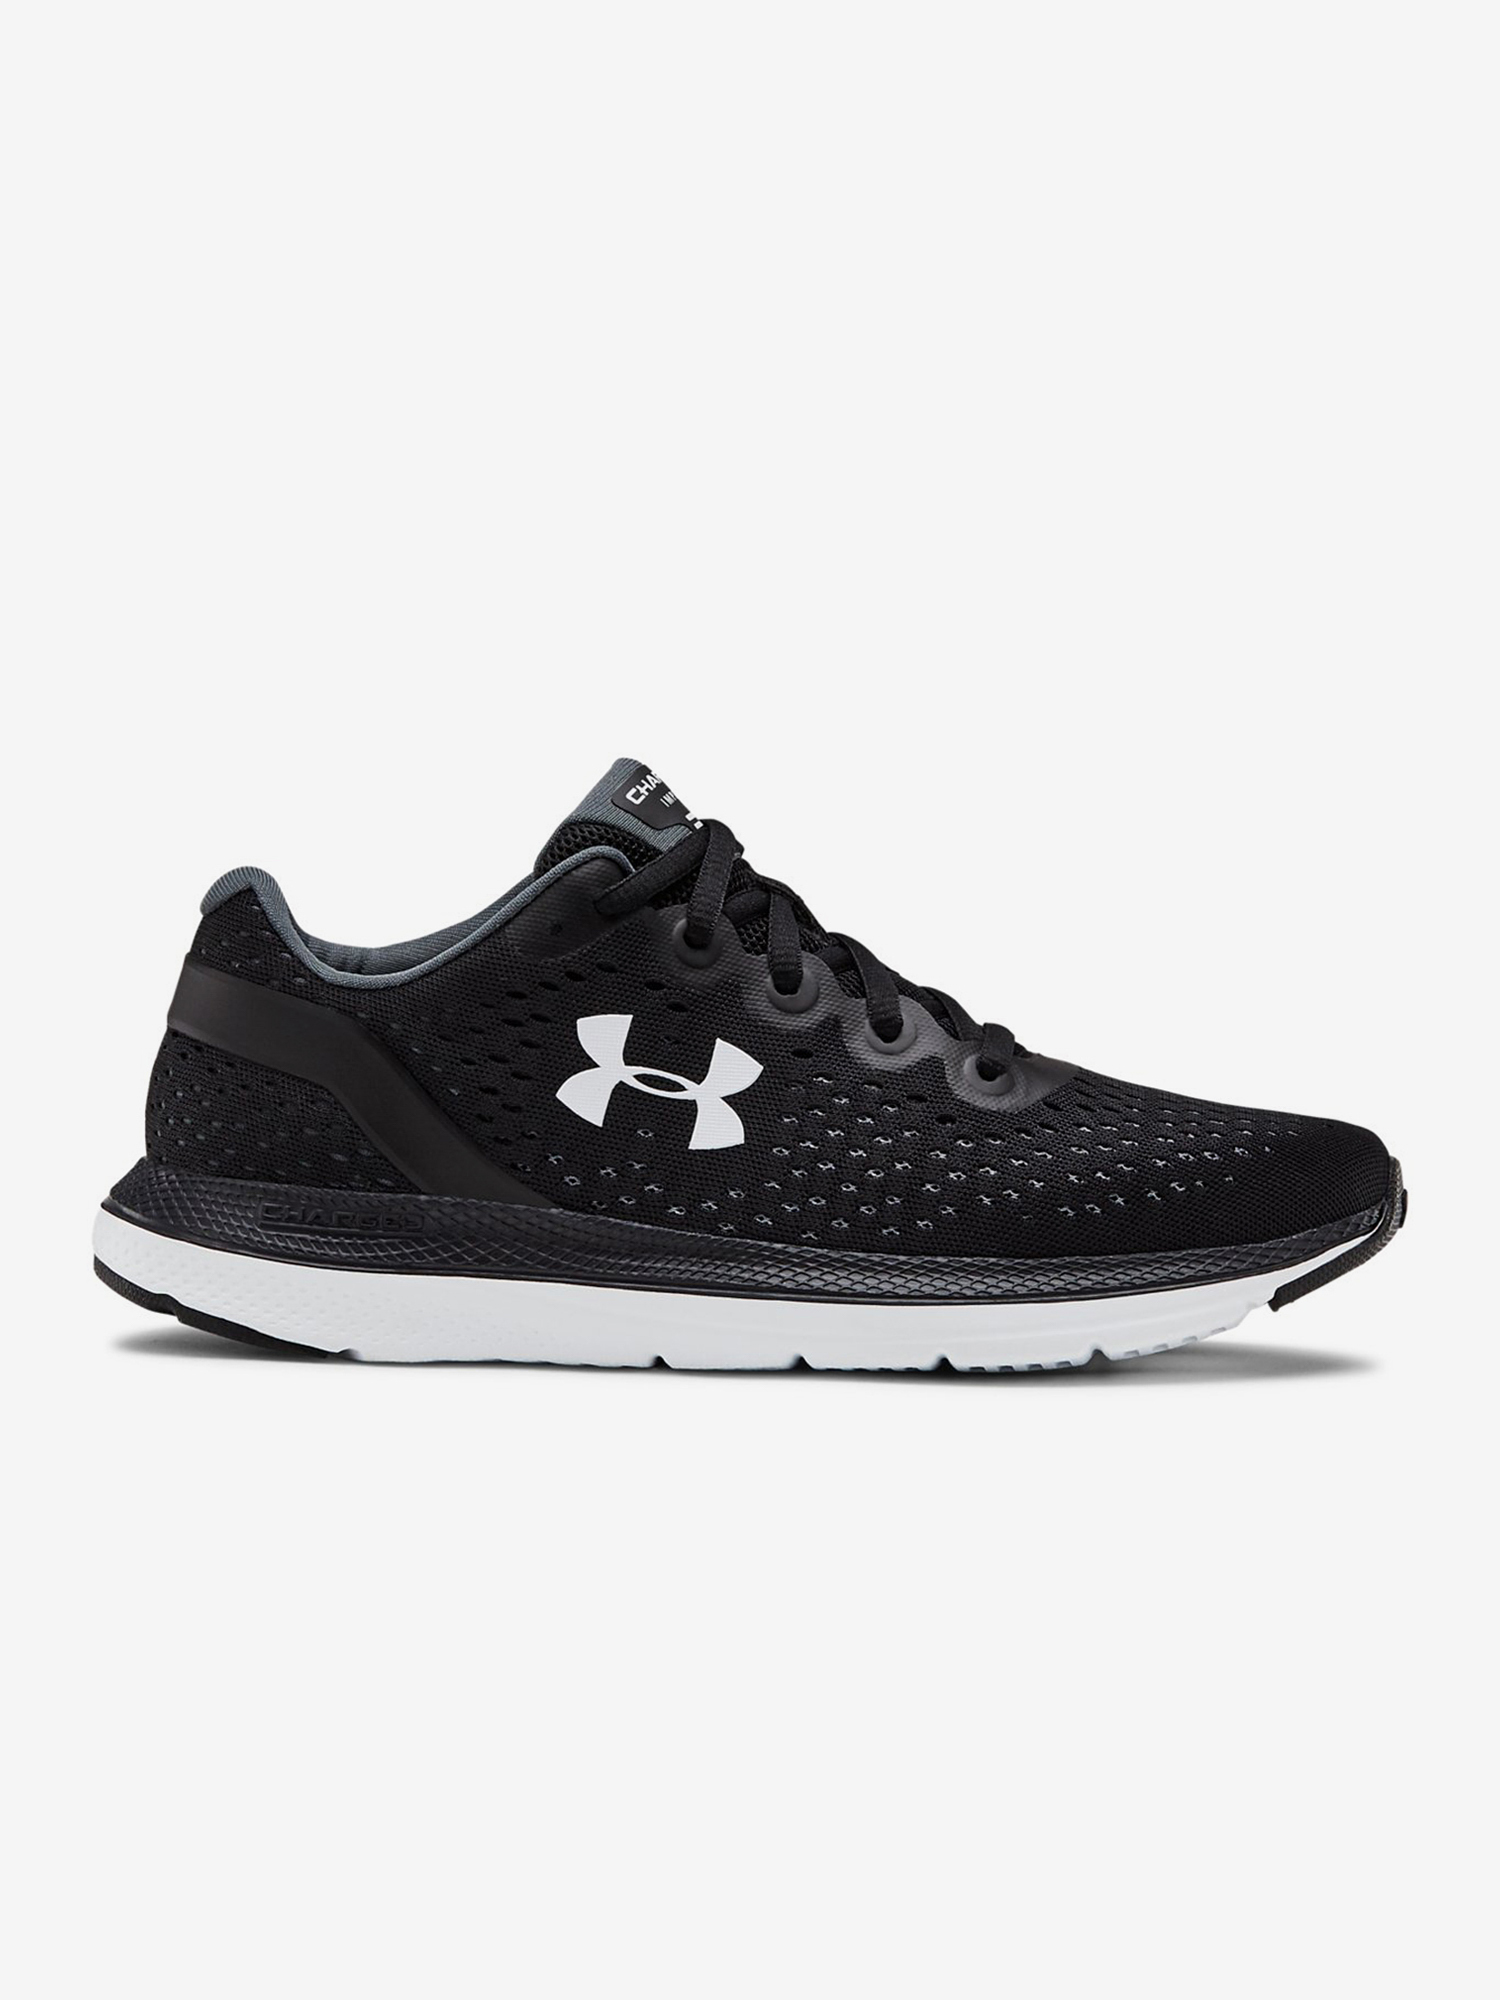 Boty Under Armour W Charged Impulse-BLK Barevná